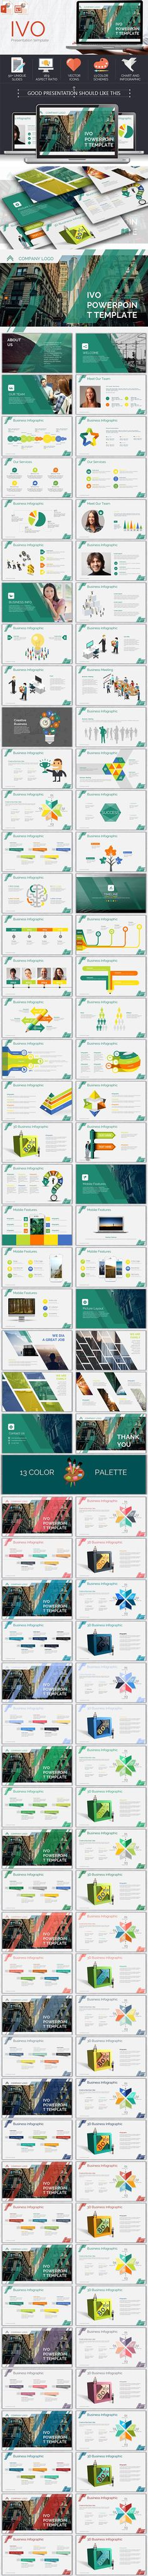 IVO Powerpoint Template #design Download: http://graphicriver.net/item/ivo-powerpoint-template/12321666?ref=ksioks